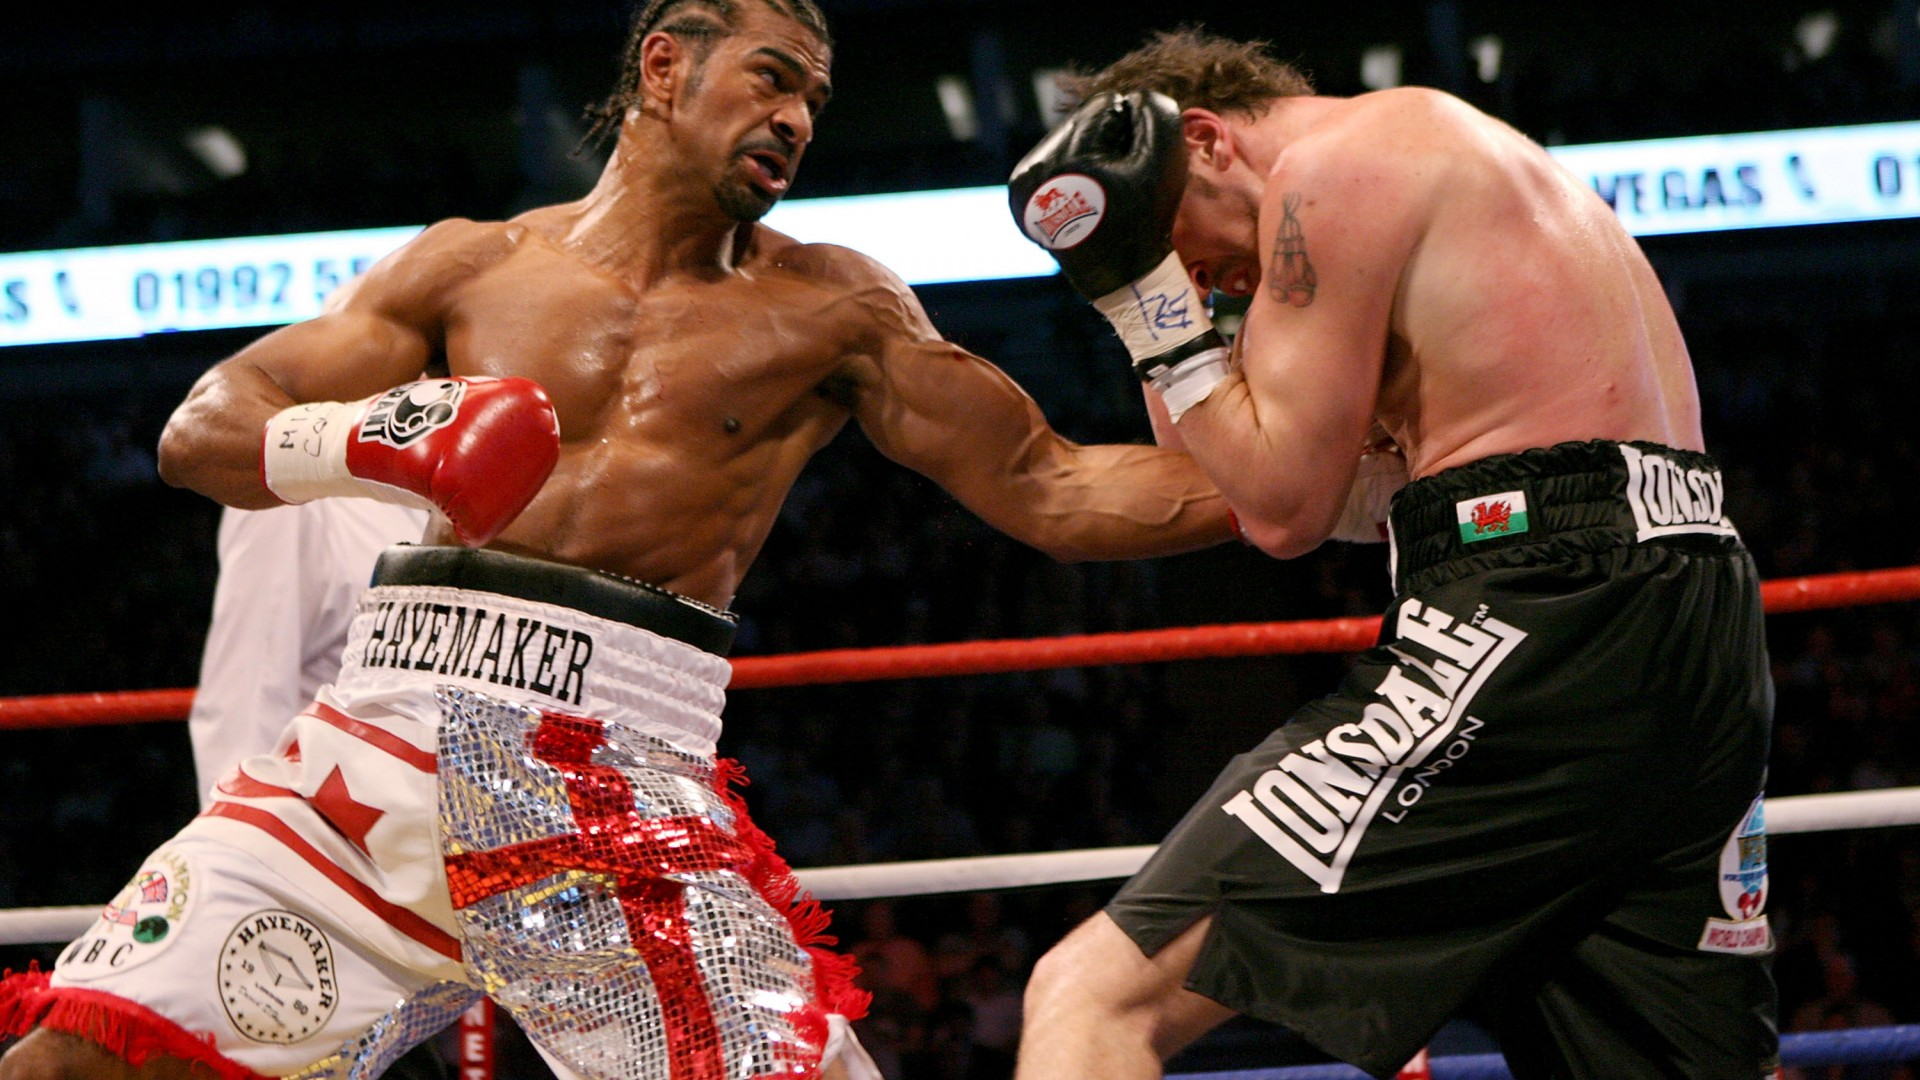 David Haye beats Enzo Maccarinelli to become the first unified cruiserweight champion ever